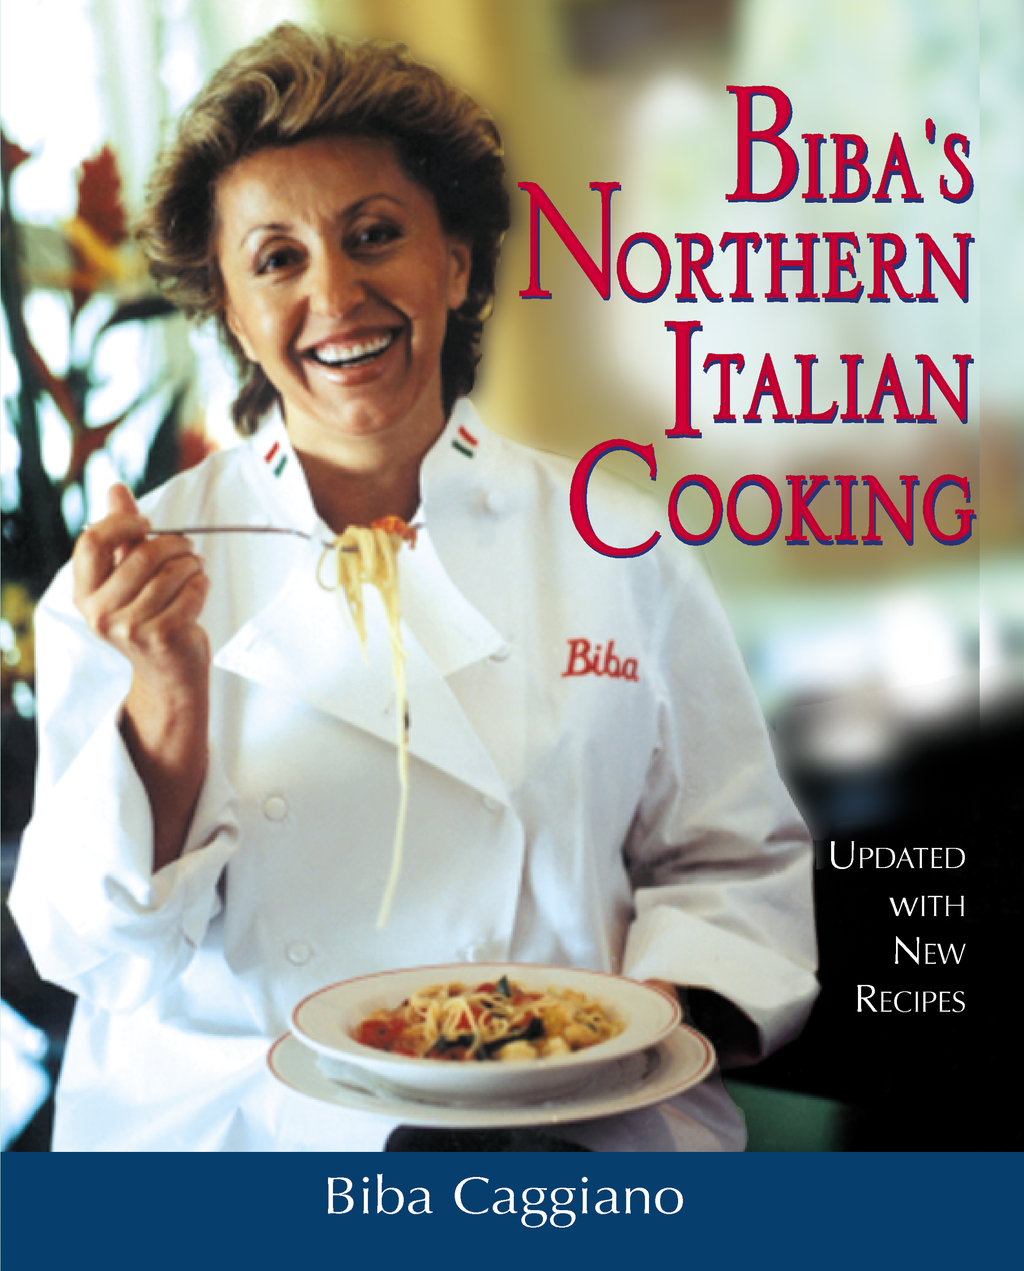 Biba's Northern Italian Cooking